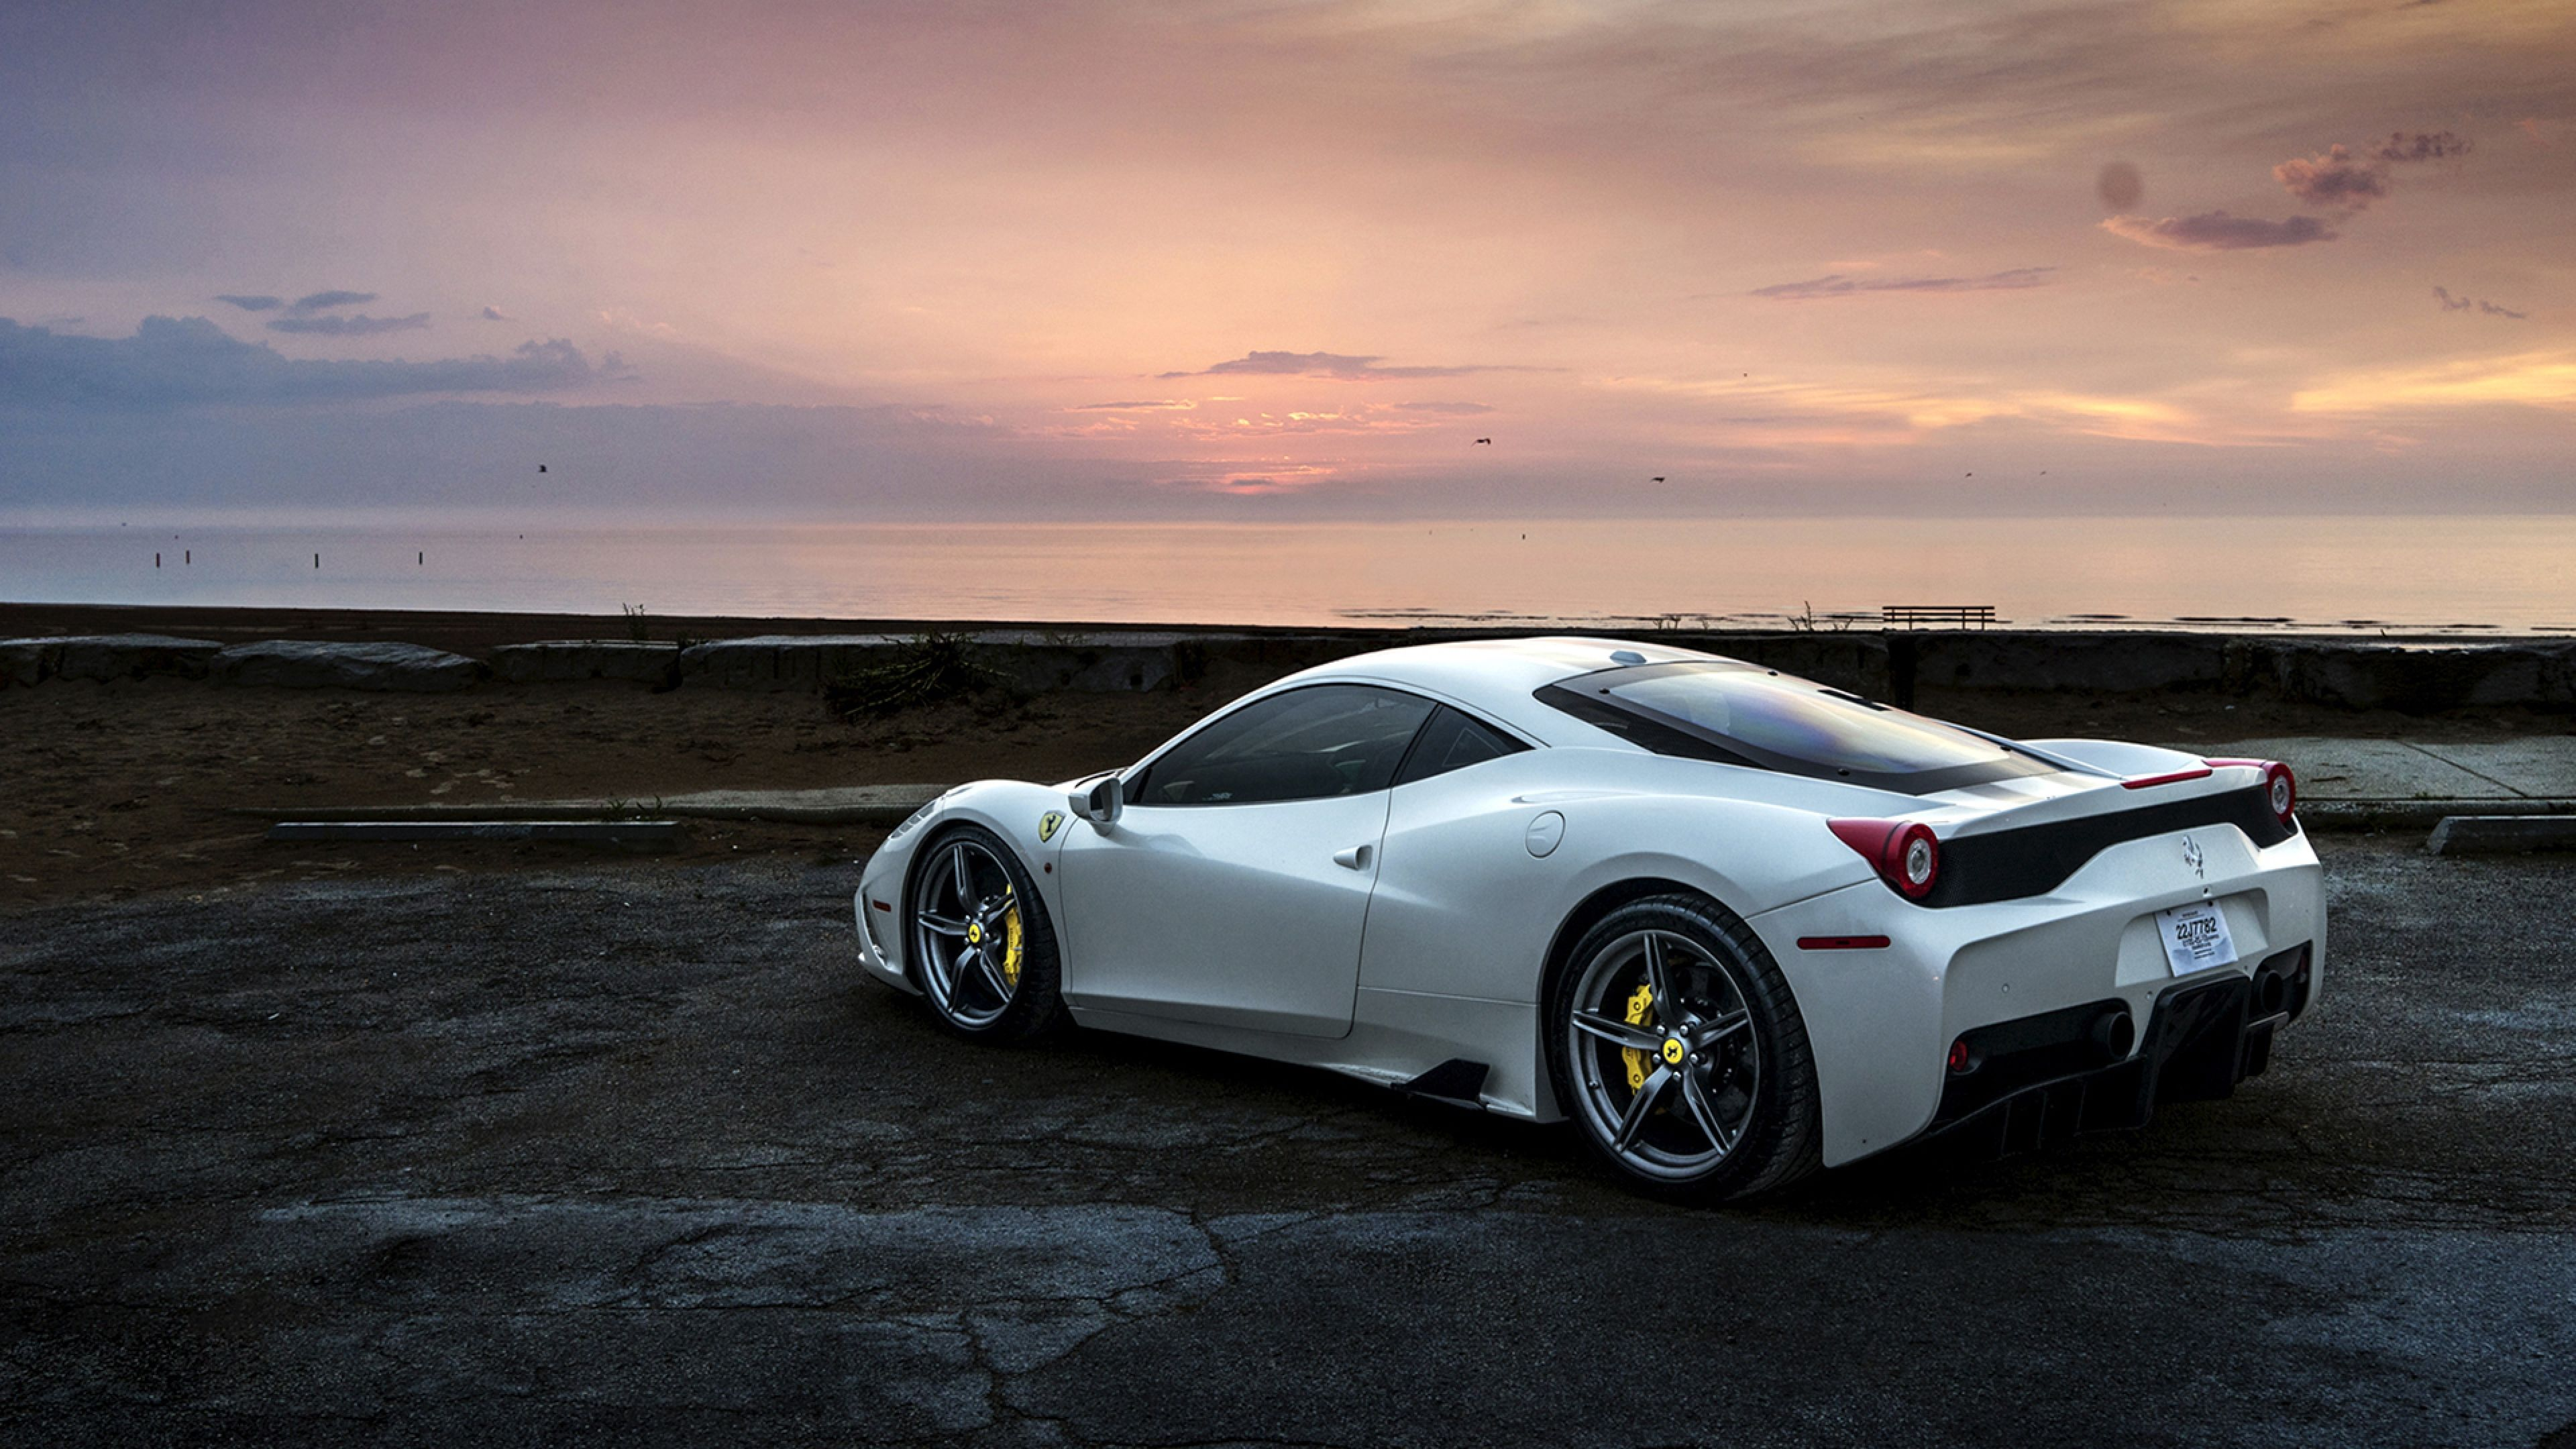 Ferrari 458 Wallpapers Top Free Ferrari 458 Backgrounds Wallpaperaccess